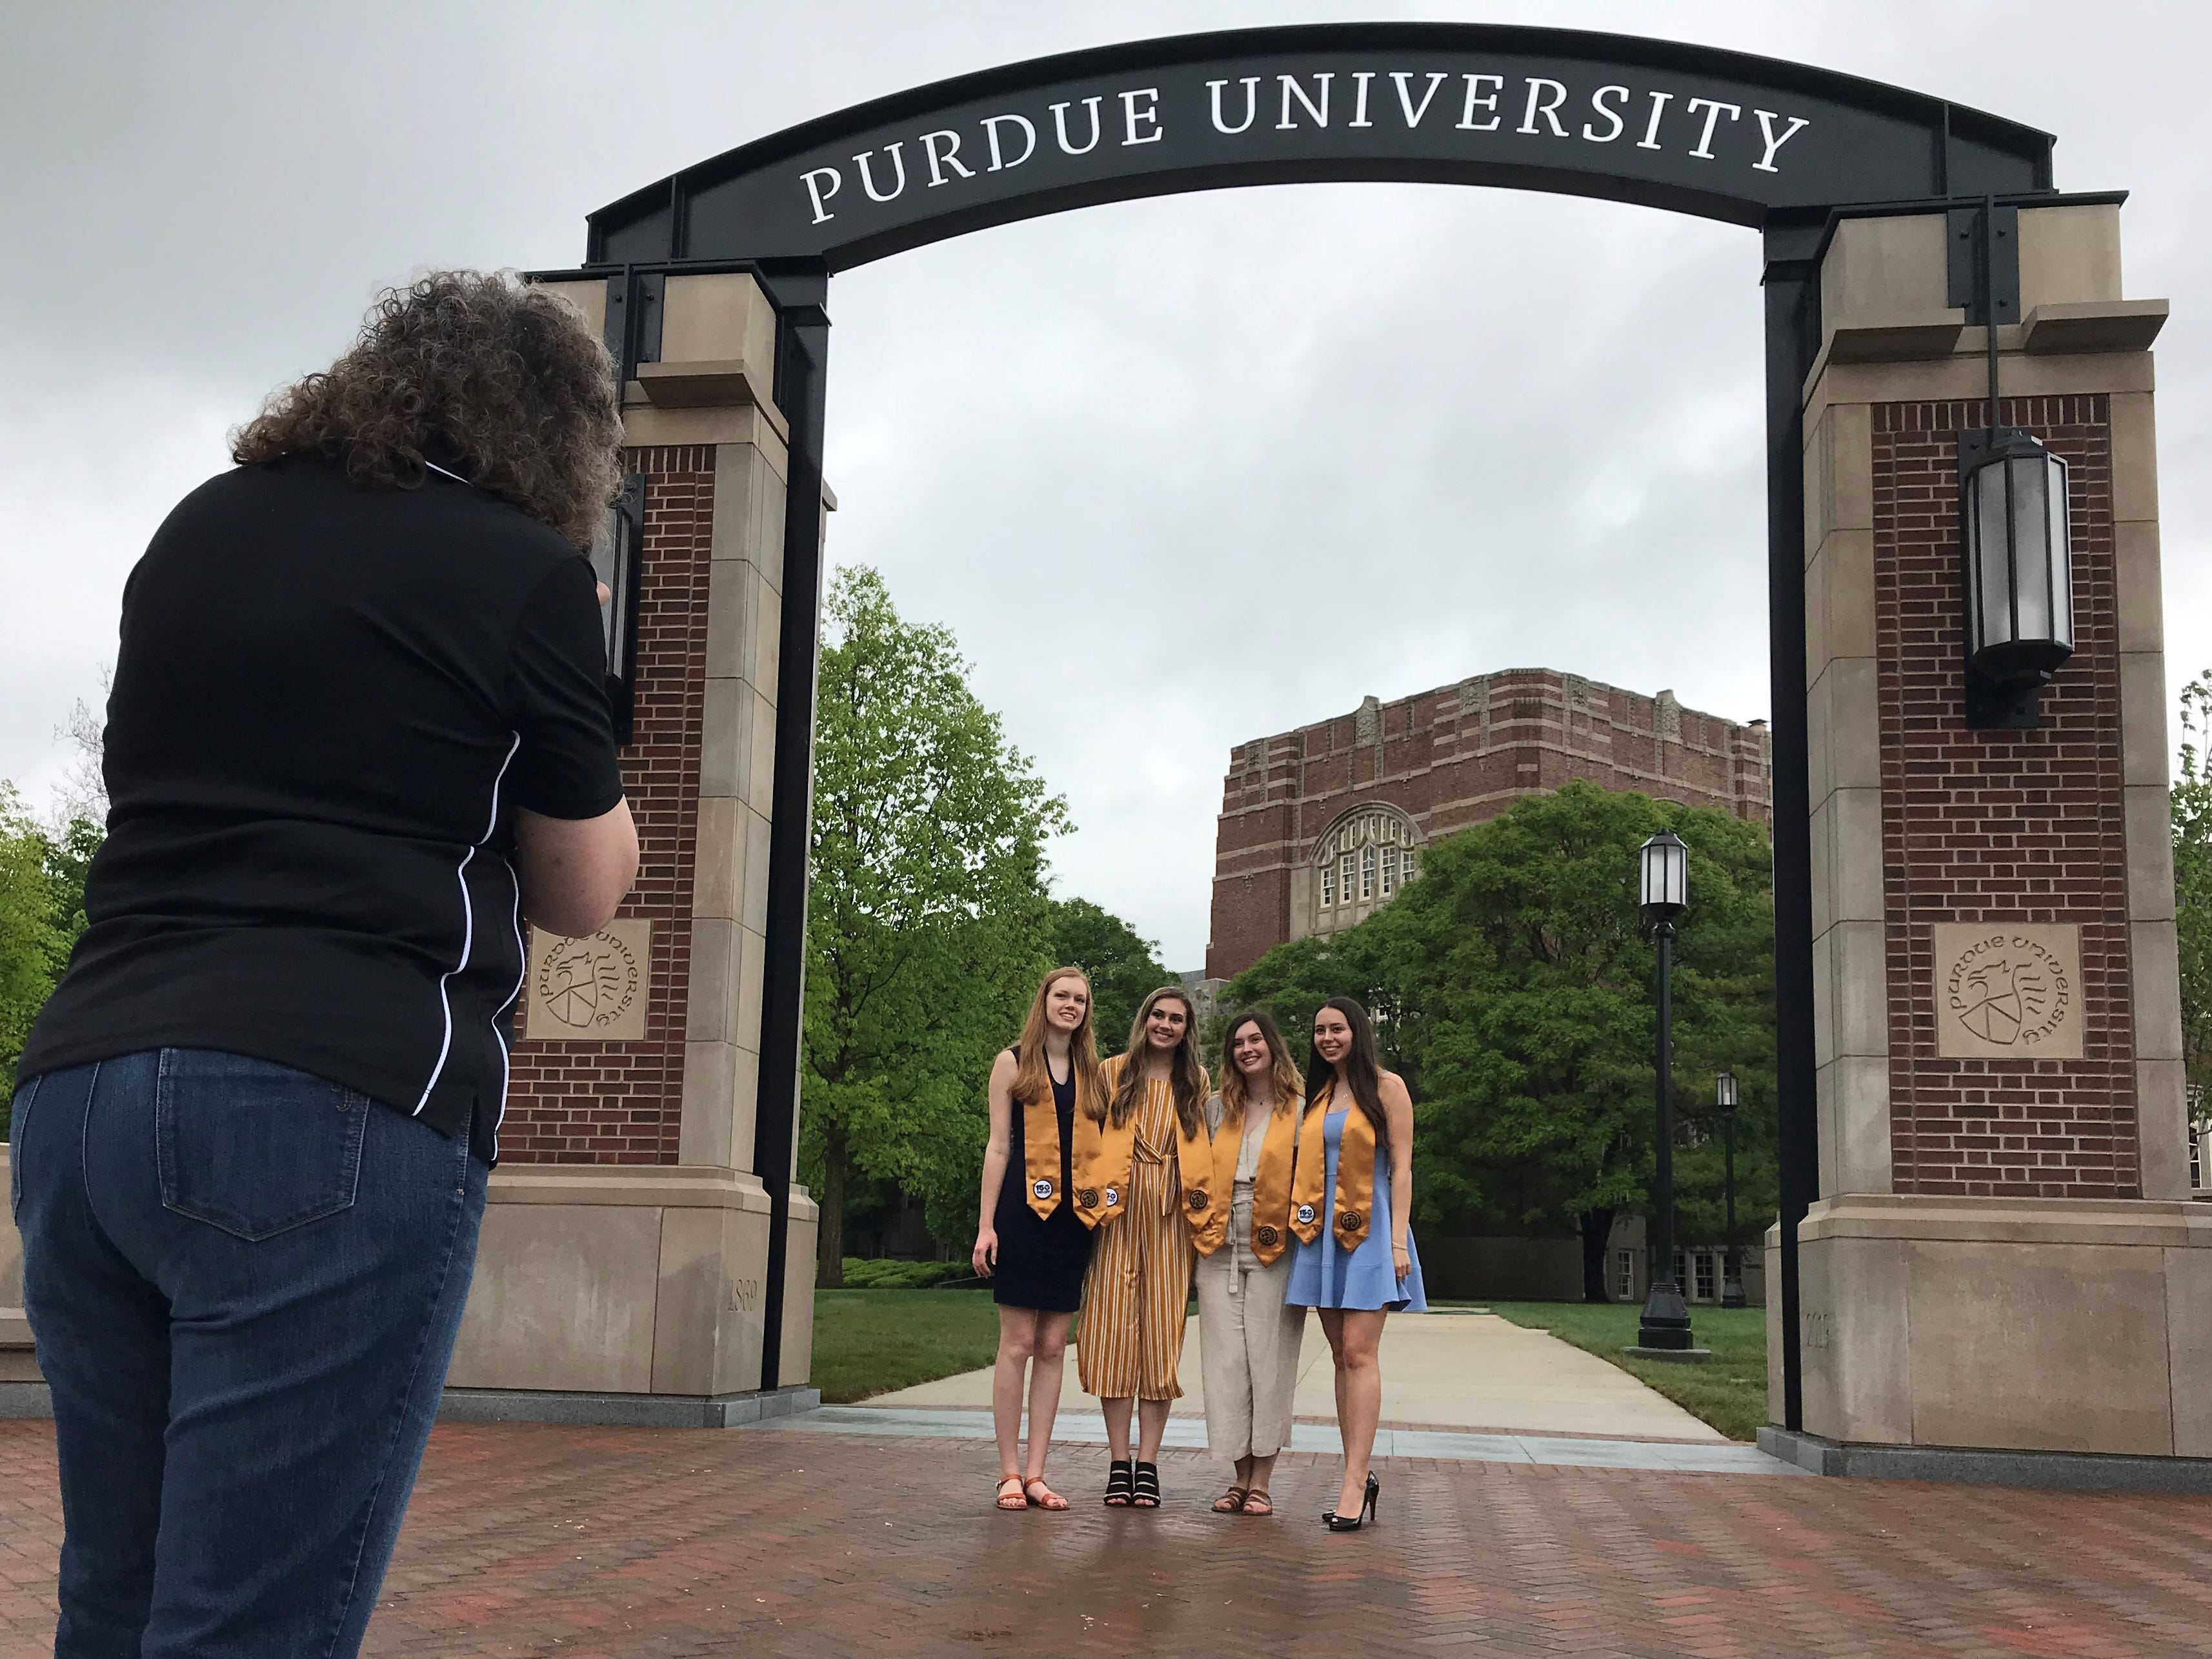 Donna Pitts, a Purdue graduate from Milan, takes a pre-graduation photo of Purdue seniors, from left, Brooke Siefert, Sarah Pitts, Emily Overway and Rachel Sims, as they pose next to Purdue's new gateway at State and Grant streets on Thursday, May 9, 2019. Purdue finished construction of the $1.9 million gateway Wednesday evening in time for this weekend's commencement ceremonies.